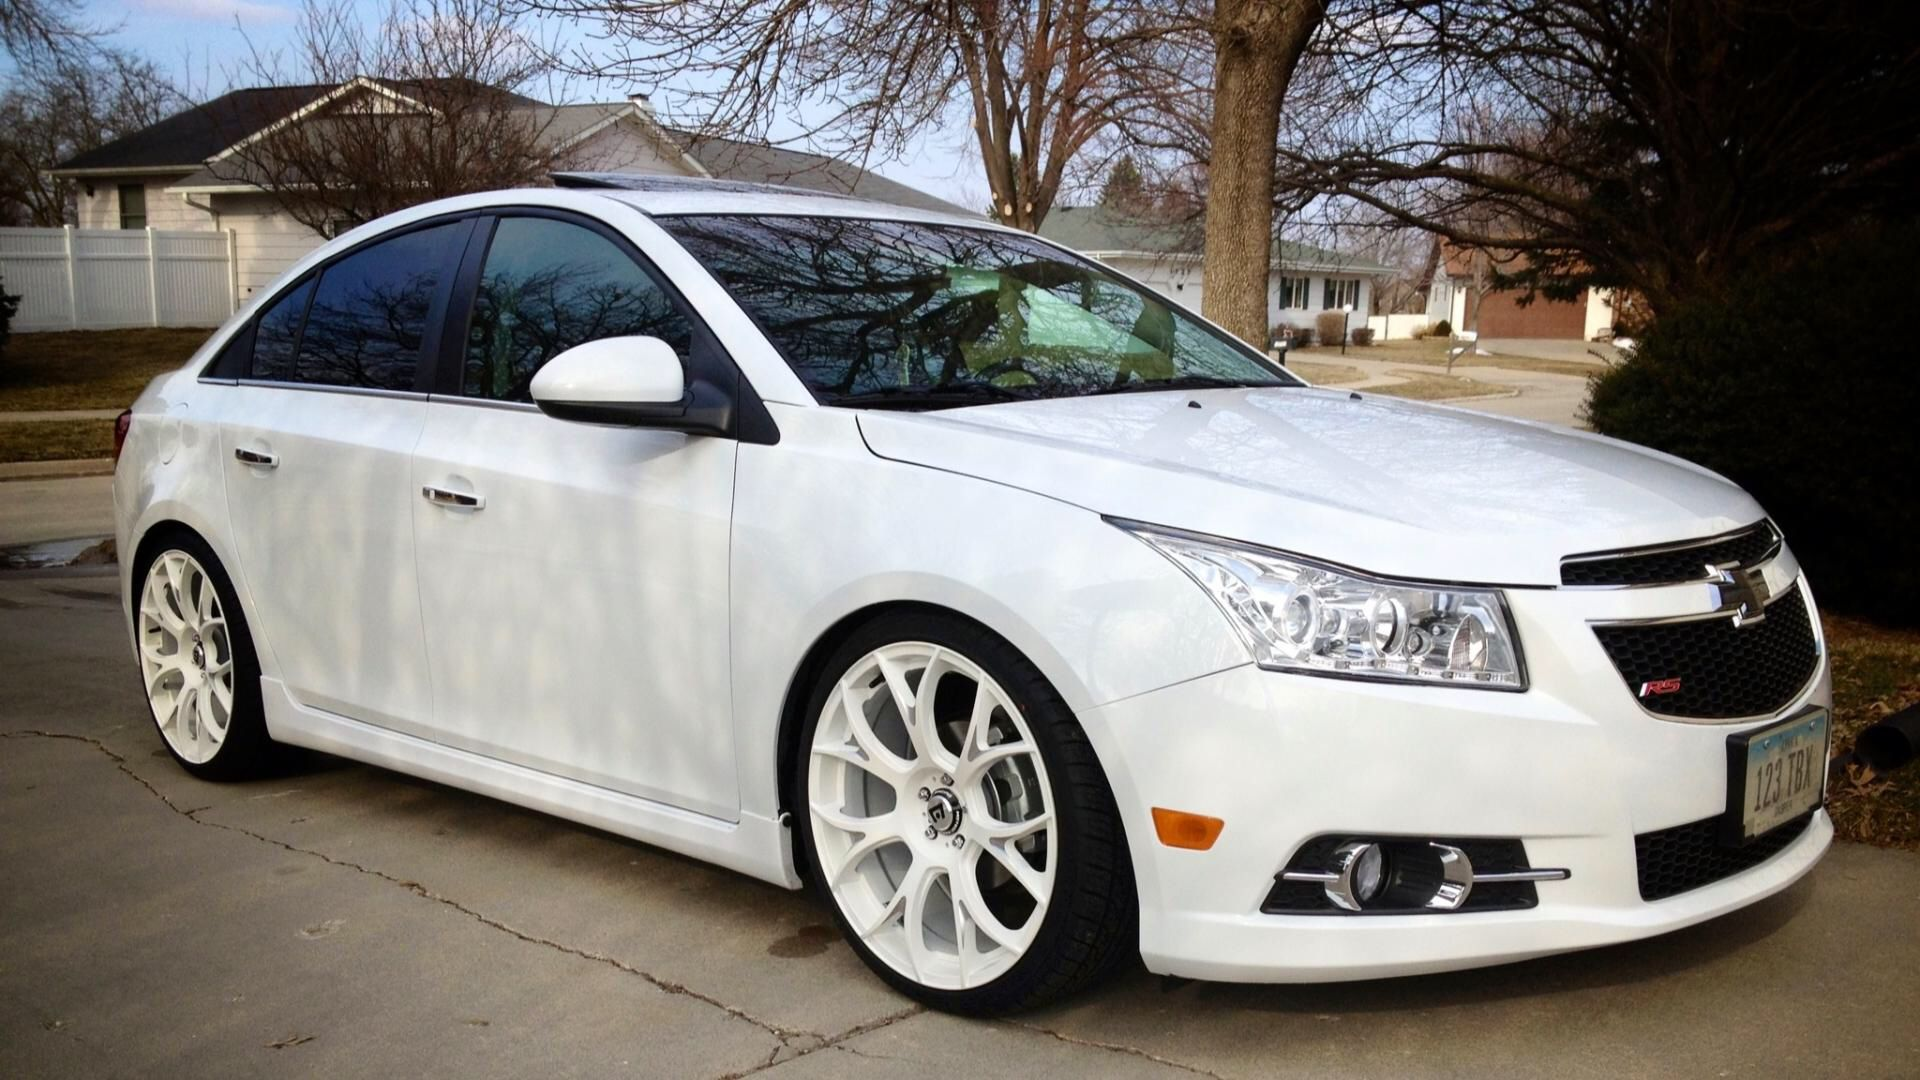 Need To Add These Rims To Our White Chevy Cruze Cruze